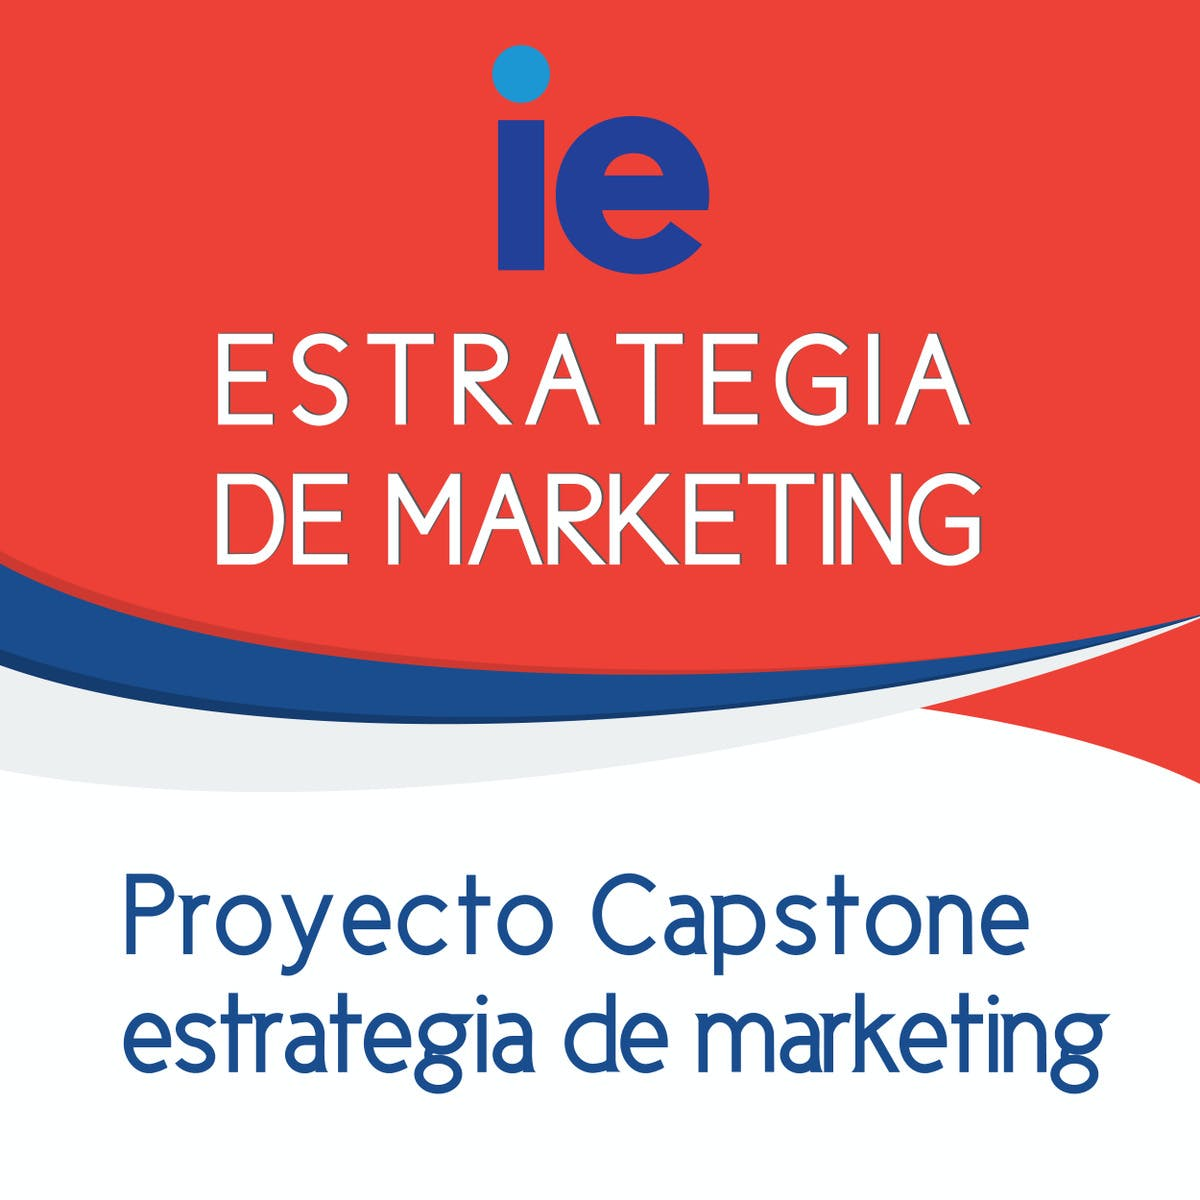 Proyecto capstone estrategia de marketing